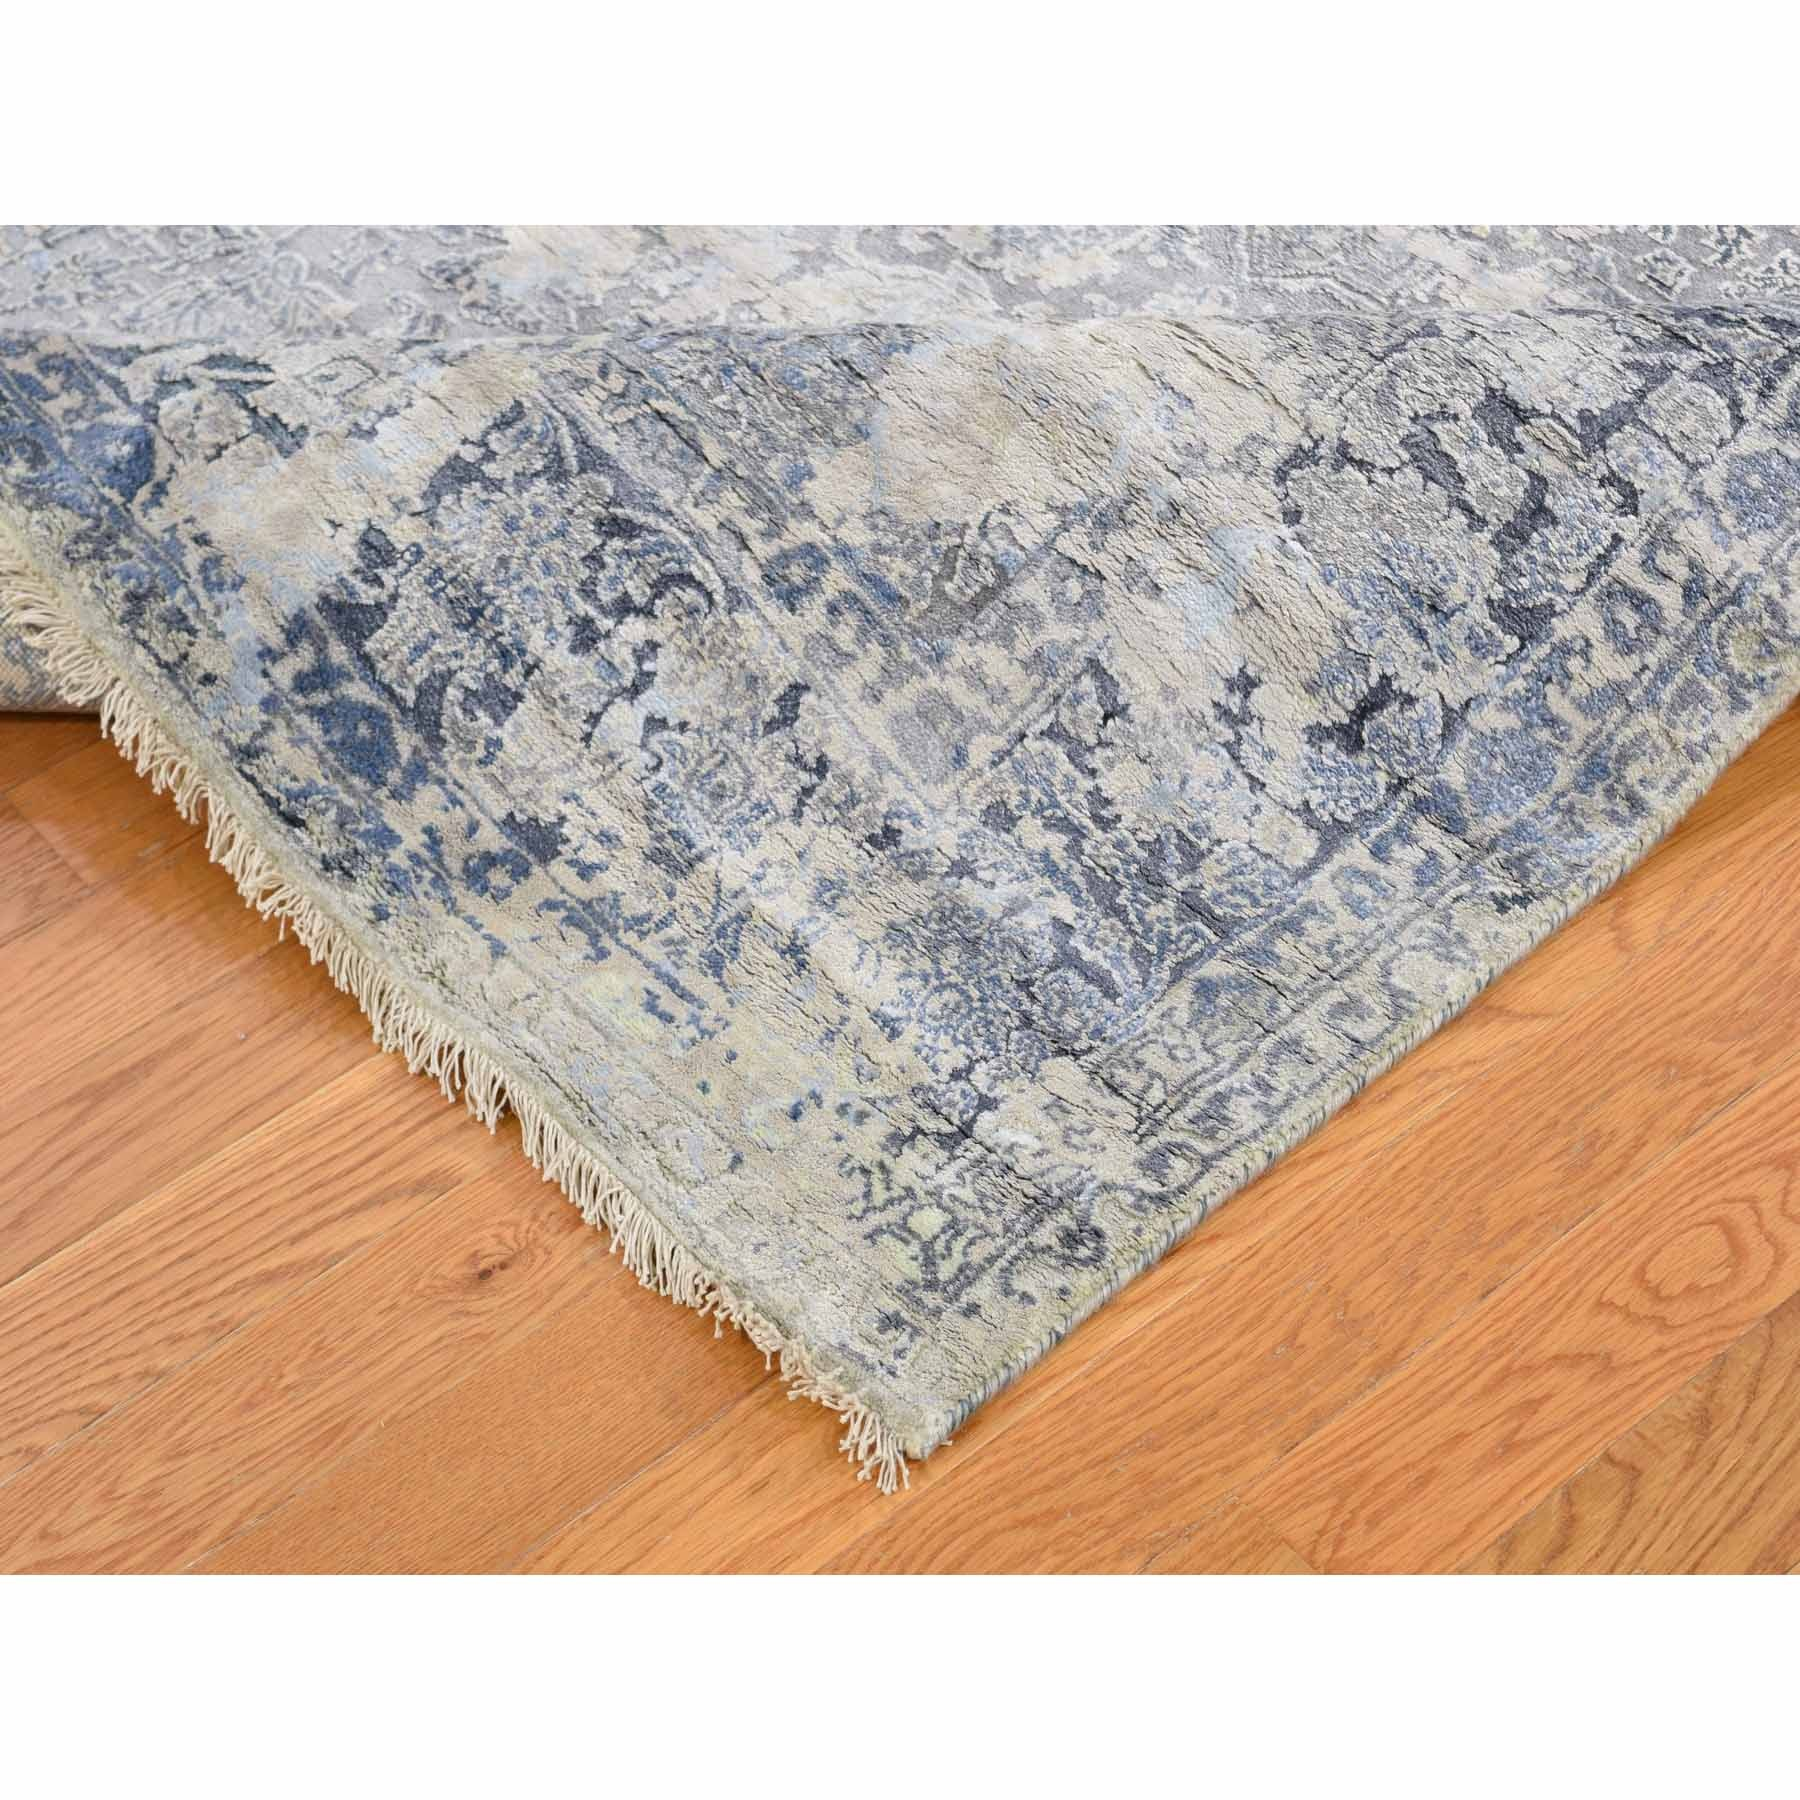 5'x7' Gray Broken Persian Design With Pure Silk Hand Knotted Oriental Rug